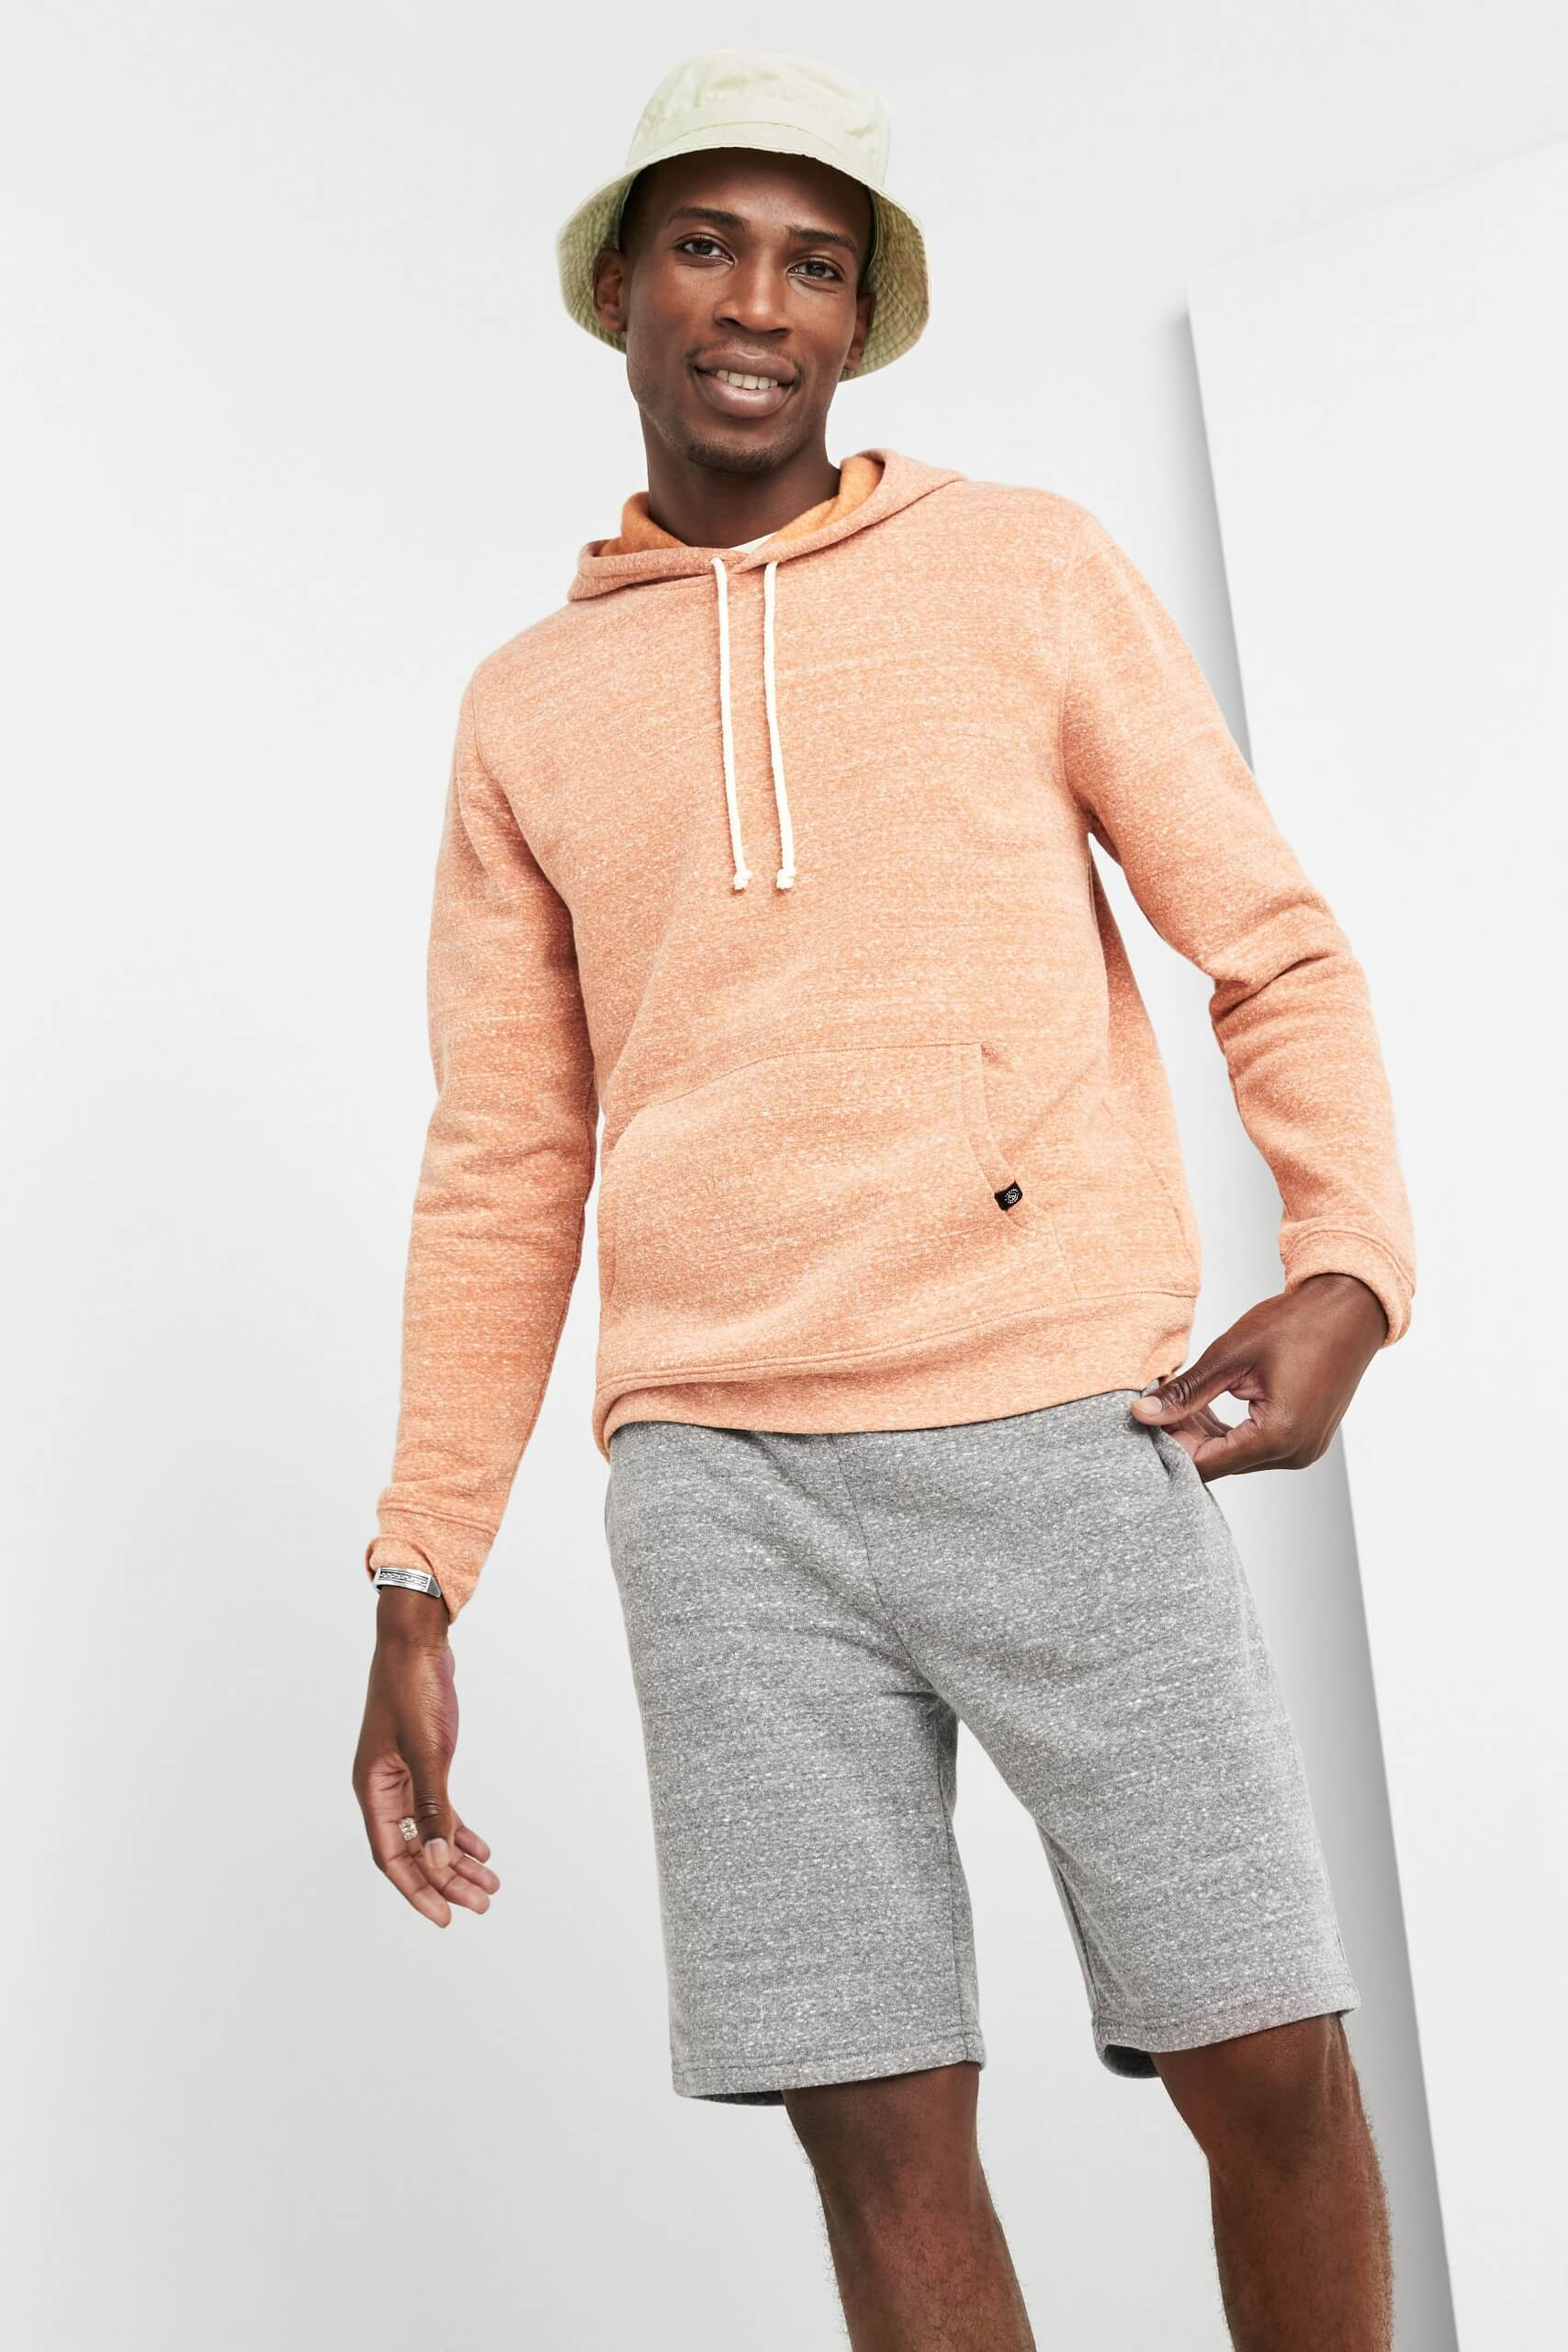 Stitch Fix Men's model wearing peach hoodie and grey shorts.